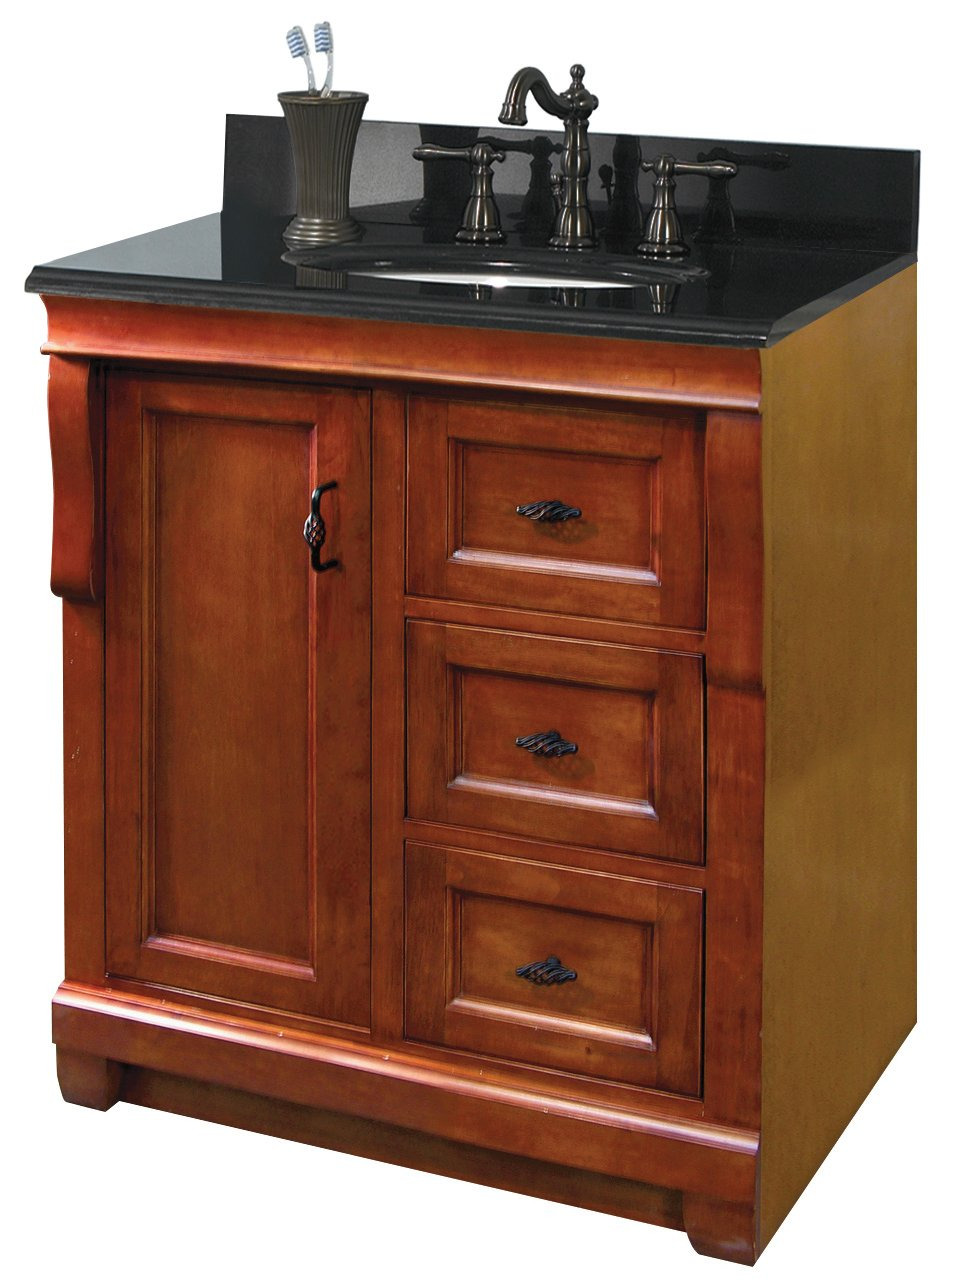 Foremost FMNACA3621D Naples 36 Inch Bath Vanity   Cabinet Only Vanity, Warm  Cinnamon   Bathroom Vanities   Amazon.com